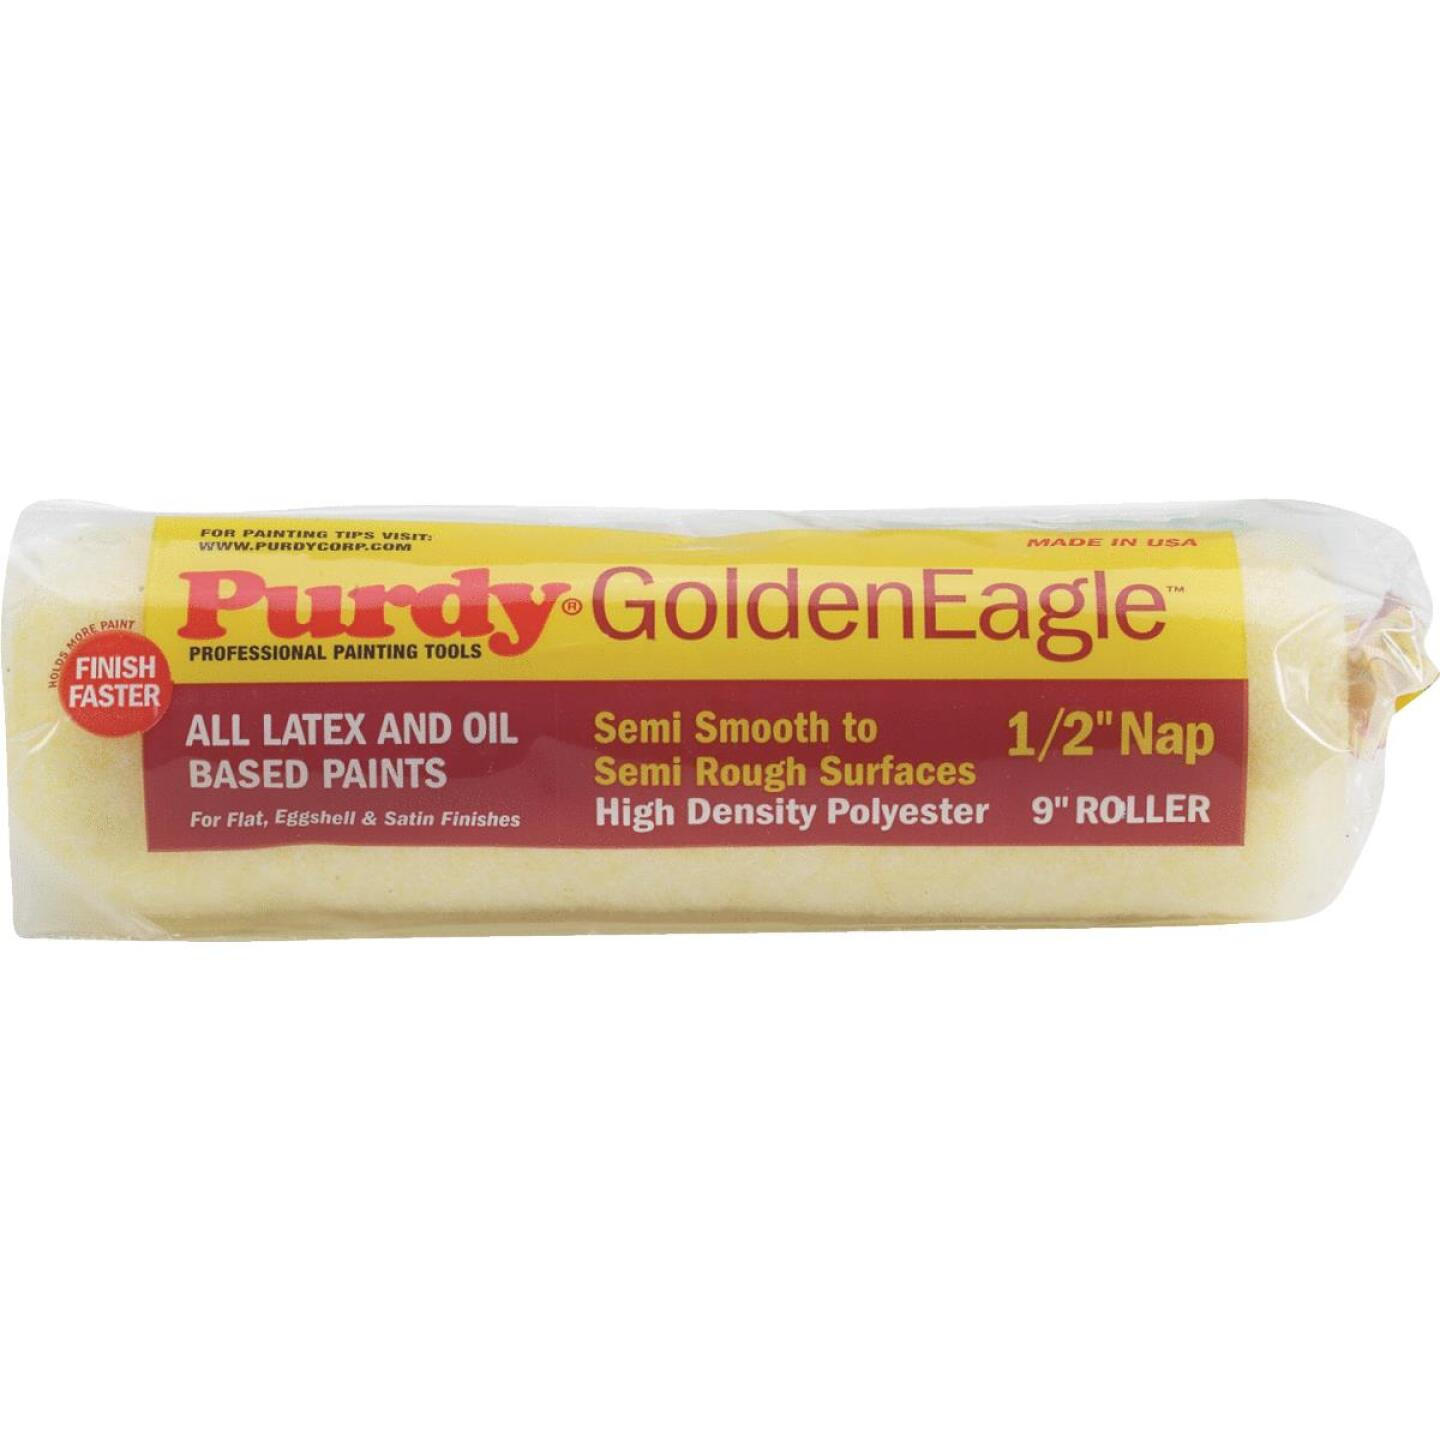 Purdy Golden Eagle 9 In. x 1/2 In. Knit Fabric Roller Cover Image 1